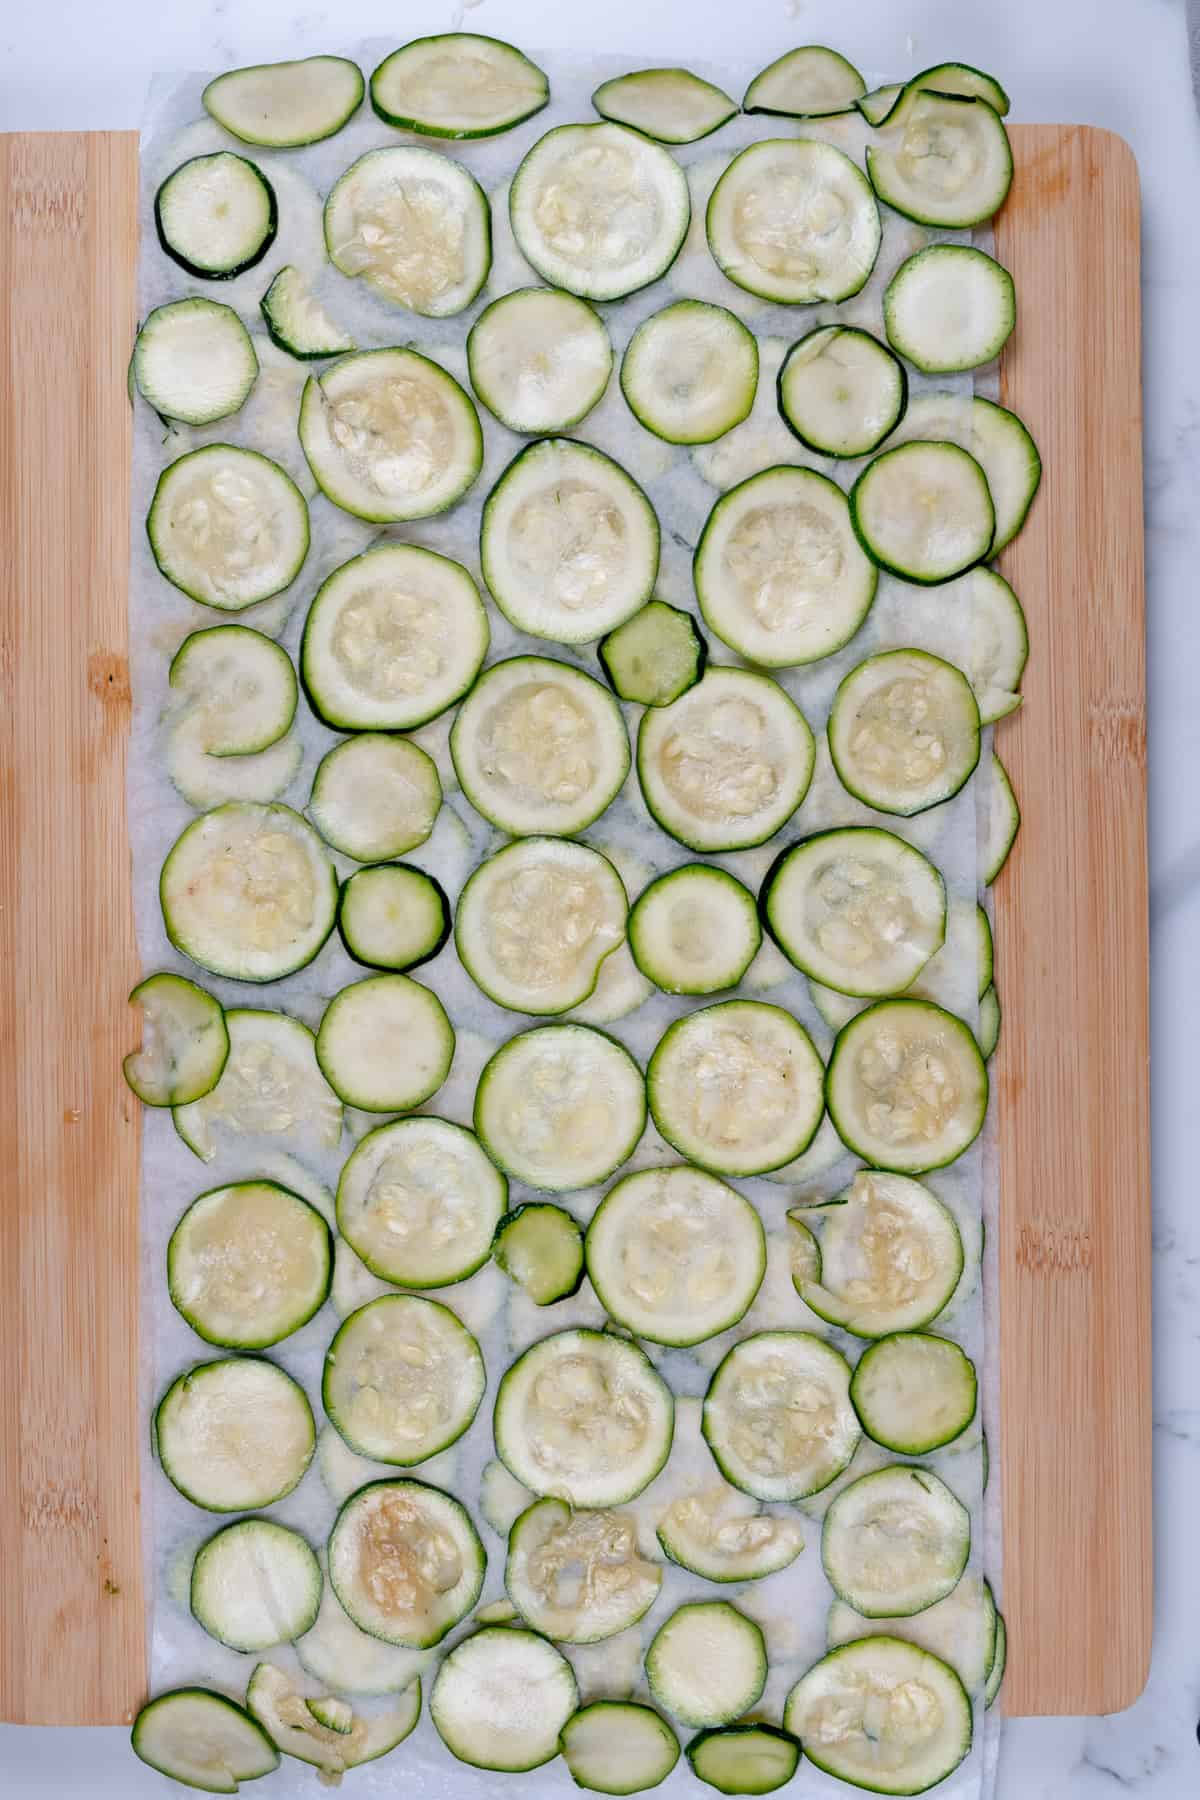 freshly cut and marinated zucchini coins laid out on paper towel